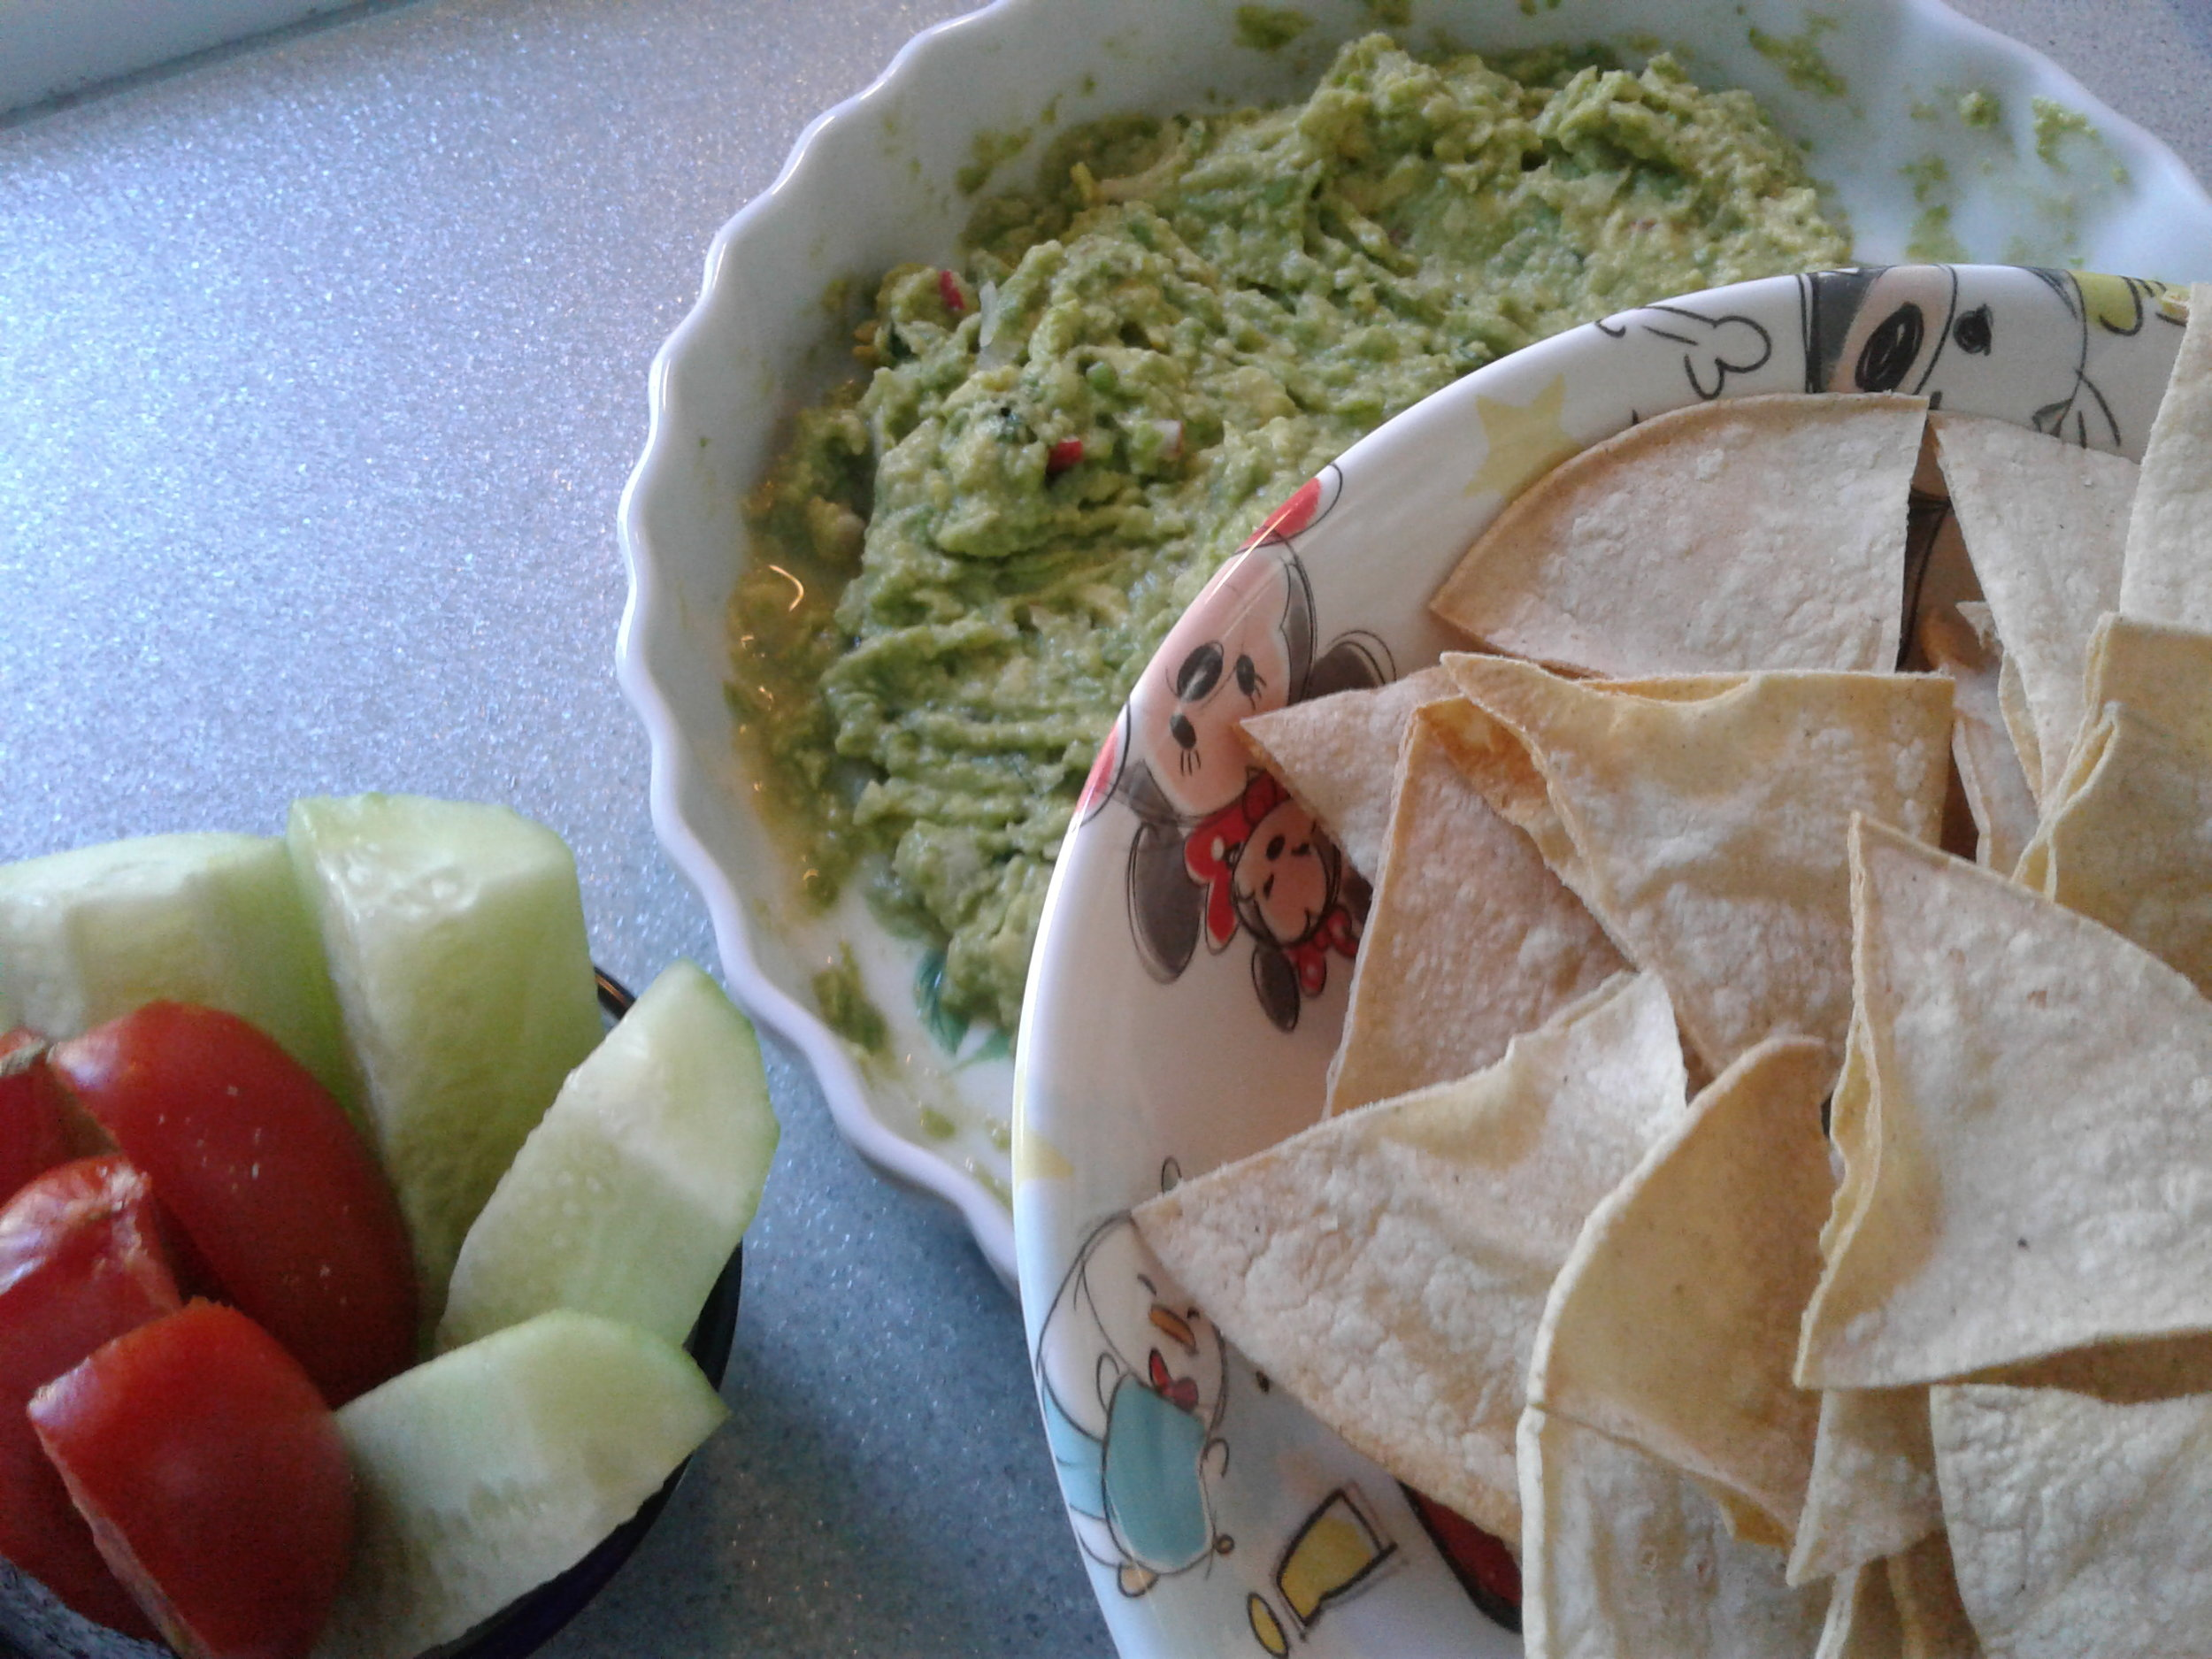 Baked Corn Tortillas Homemade Guacamole Cucumber wedges Roma tomato.jpg